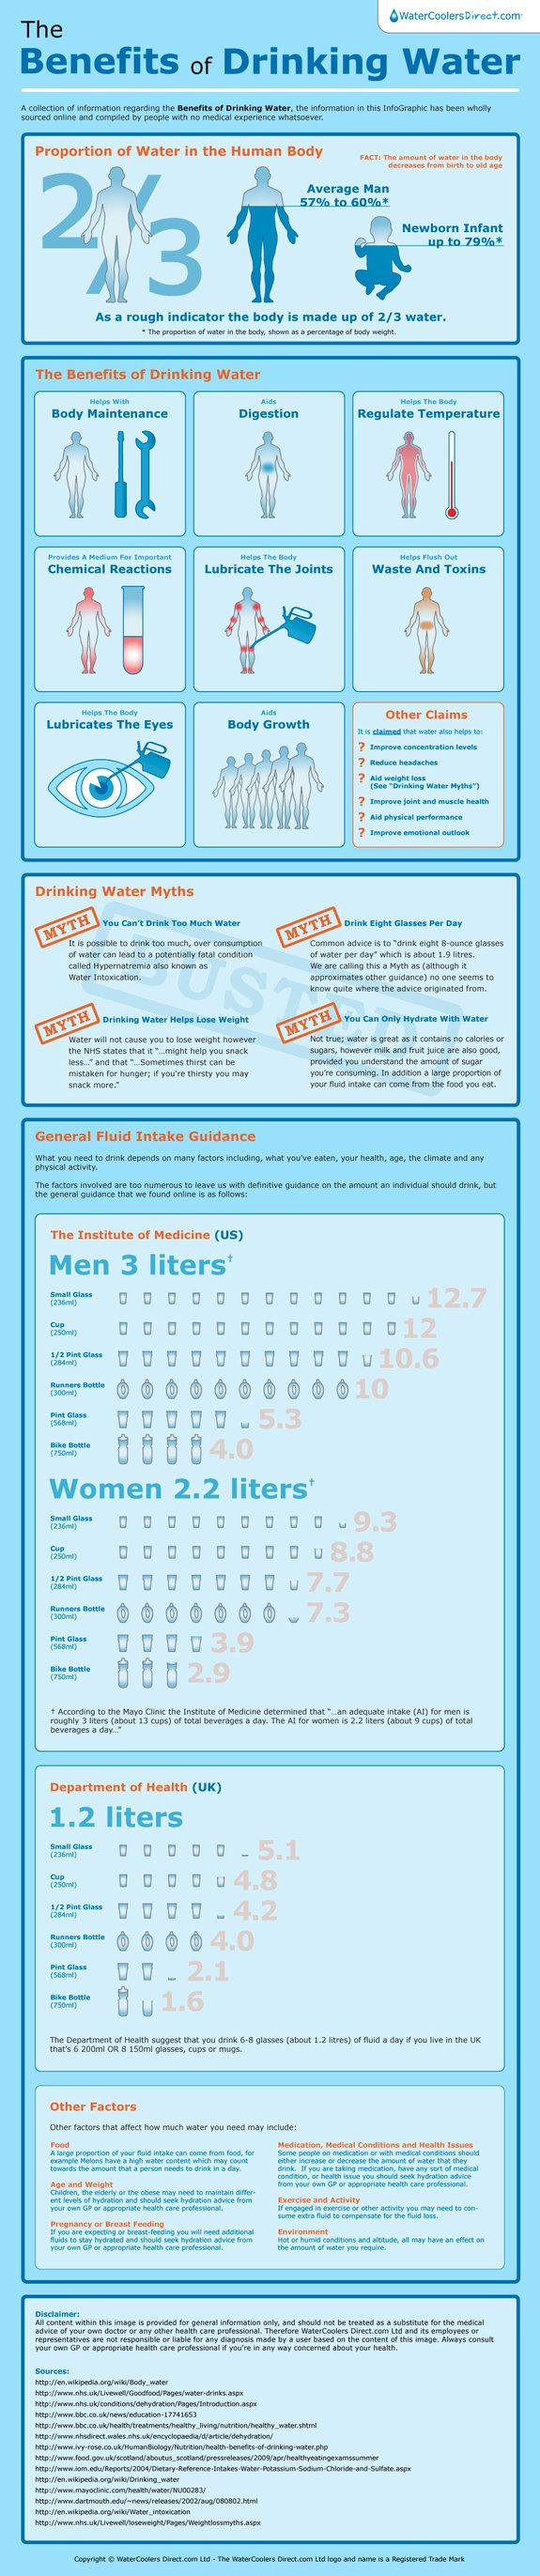 The Benefits of Drinking Water infographic